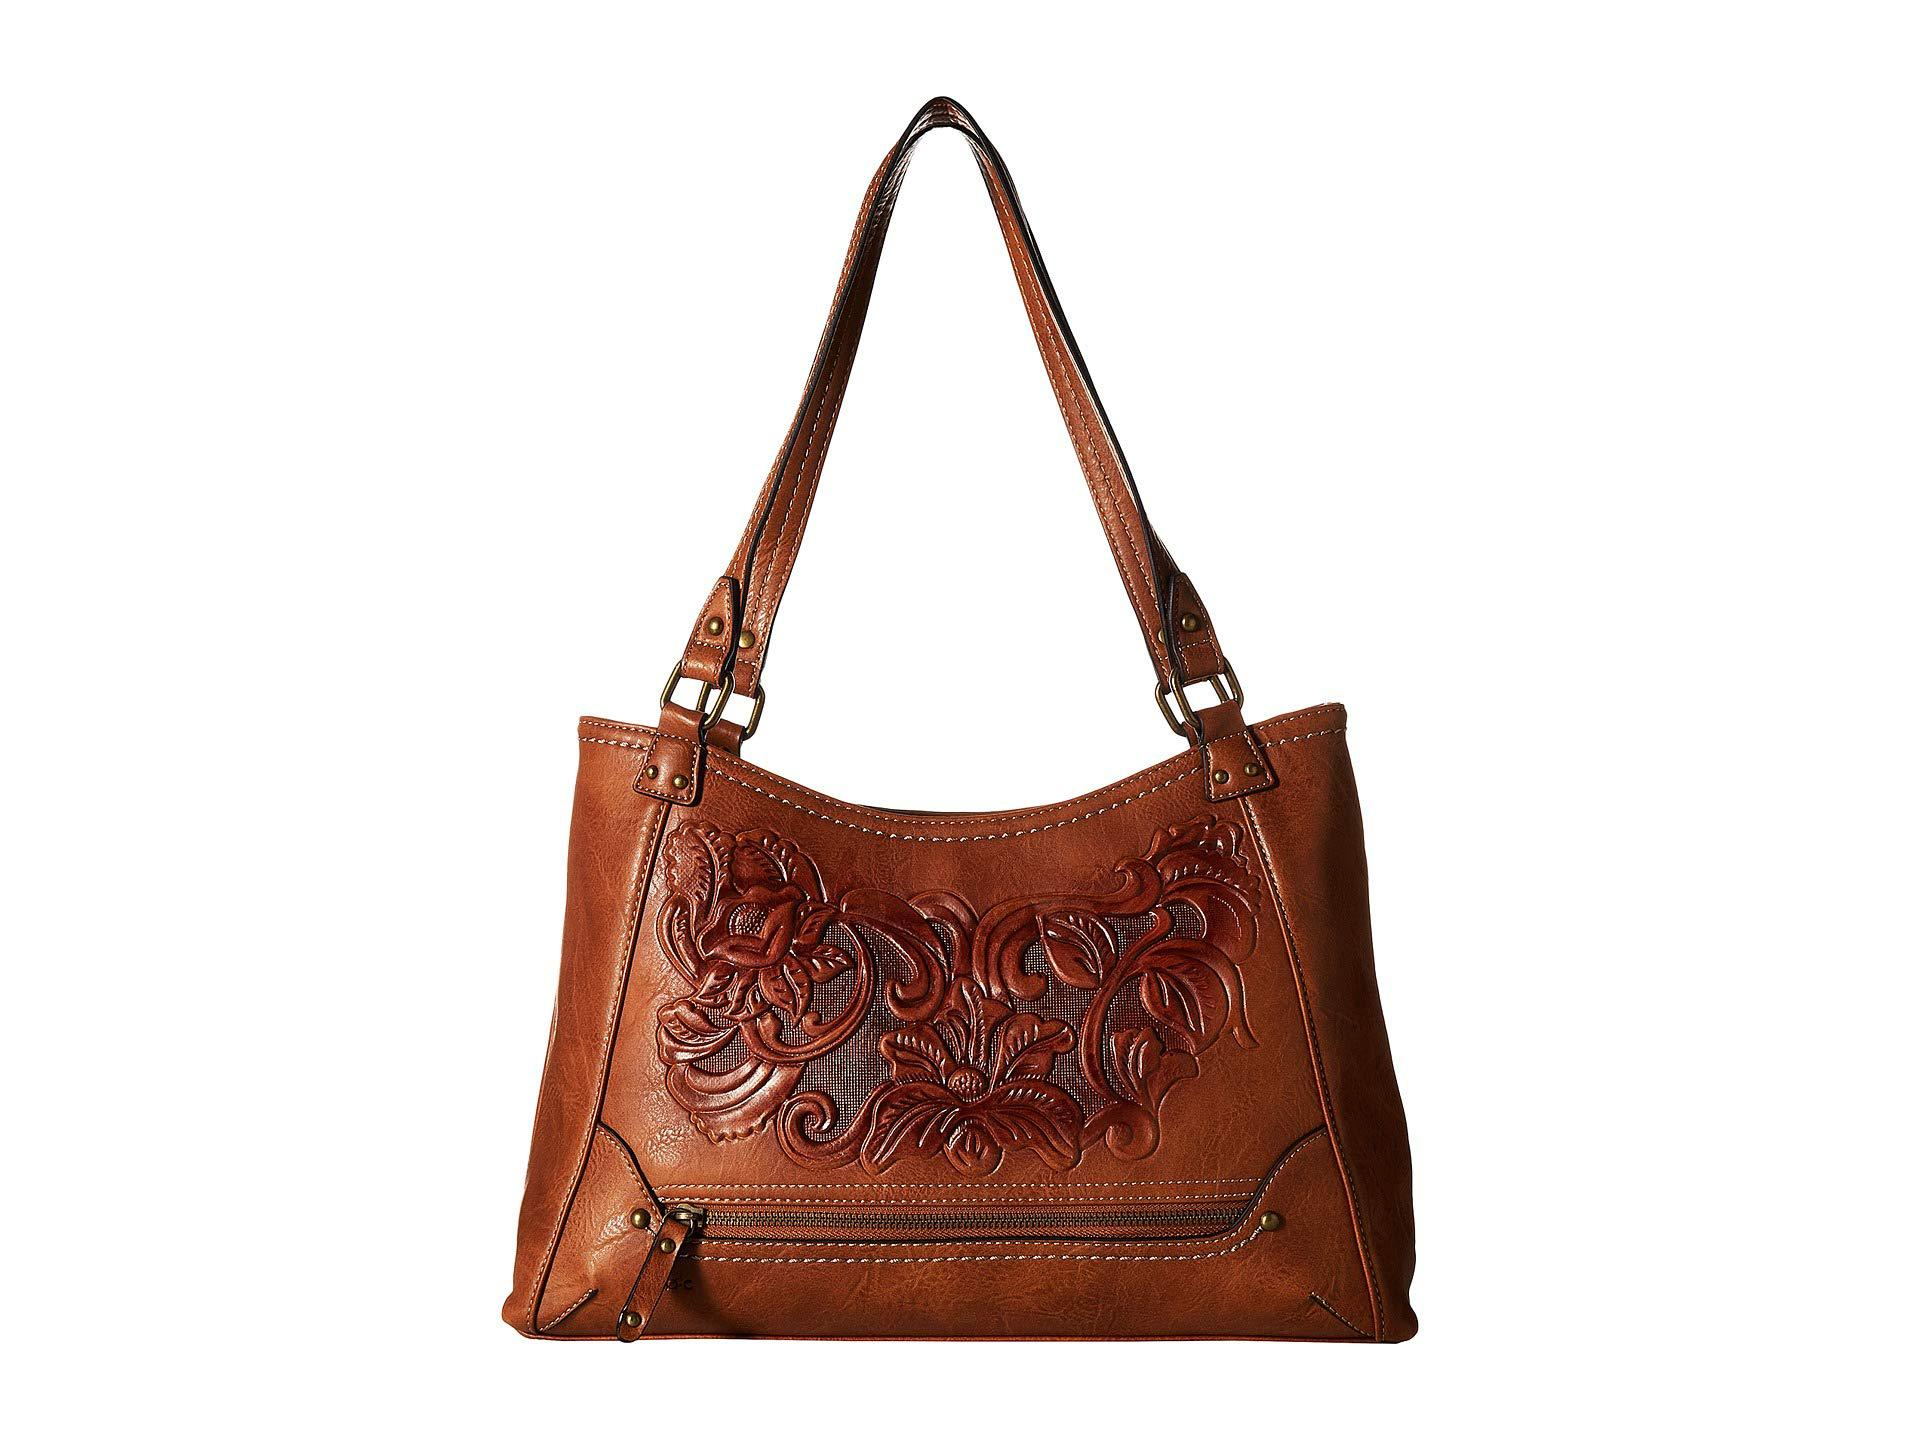 Lyst - b.ø.c. Botanica Flower Amhearst Tote in Brown - Save 11% 8f442480f27f4